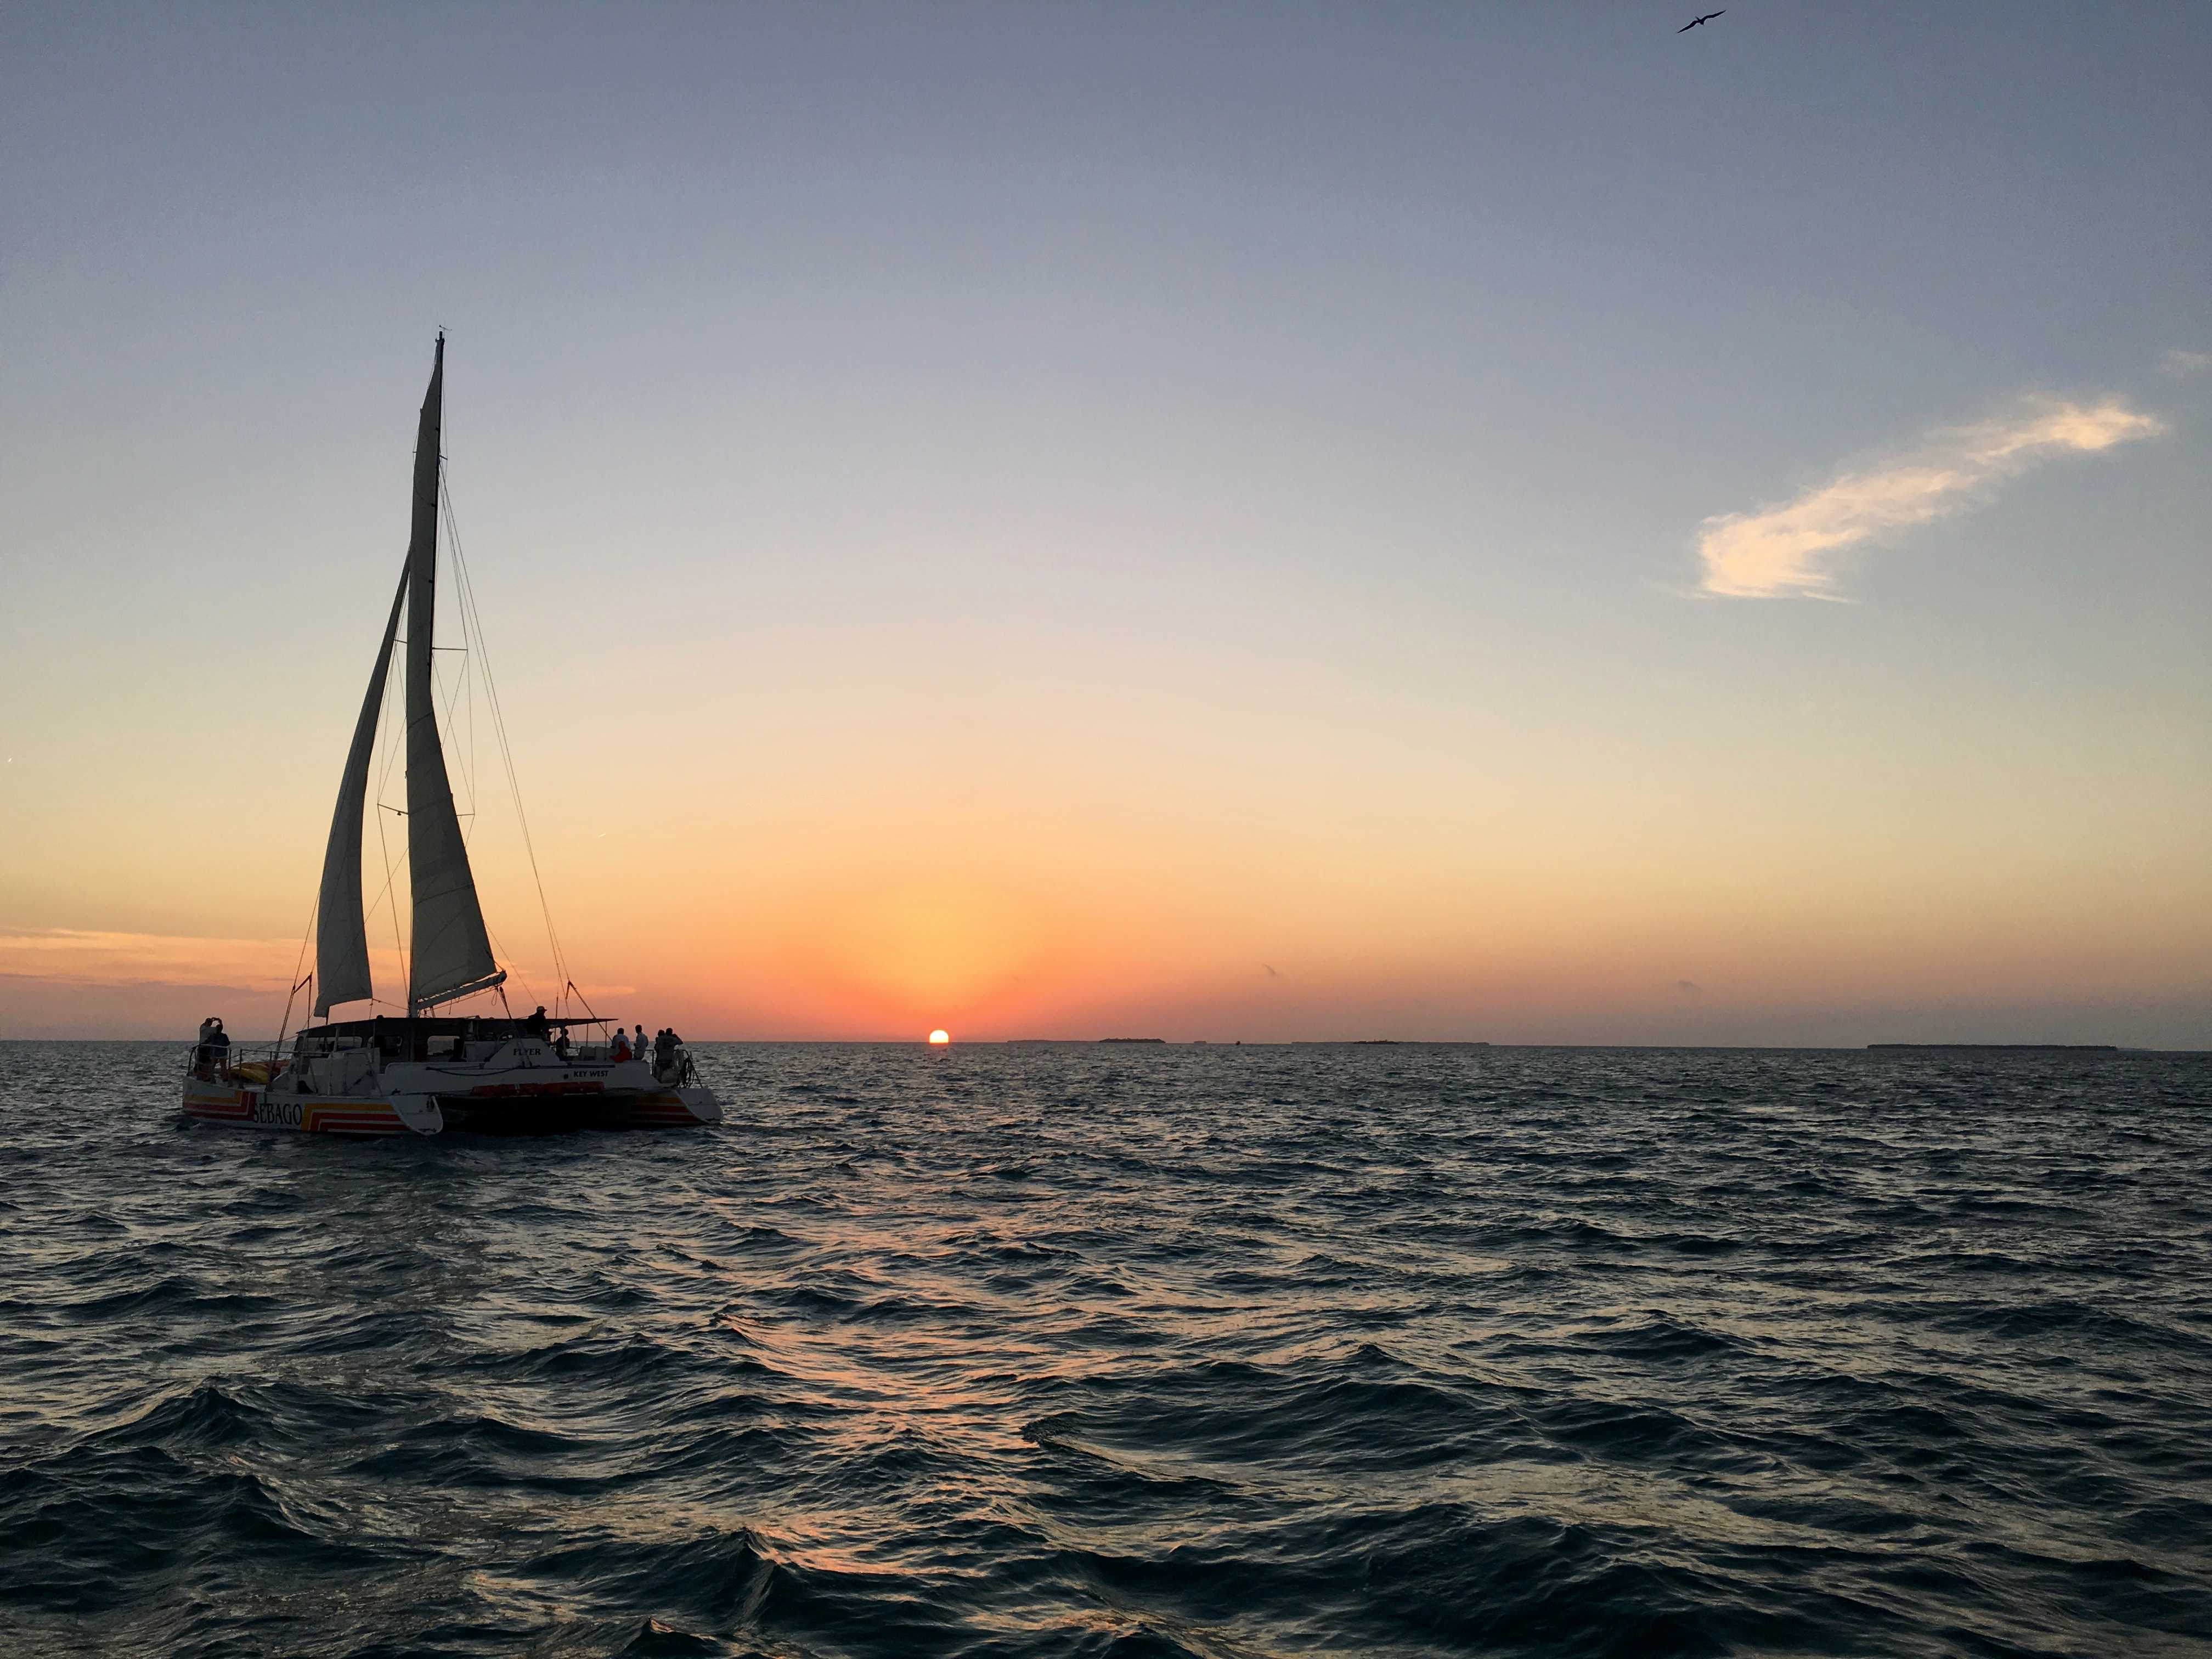 Spring Break in Style: Where to Stay in Key West